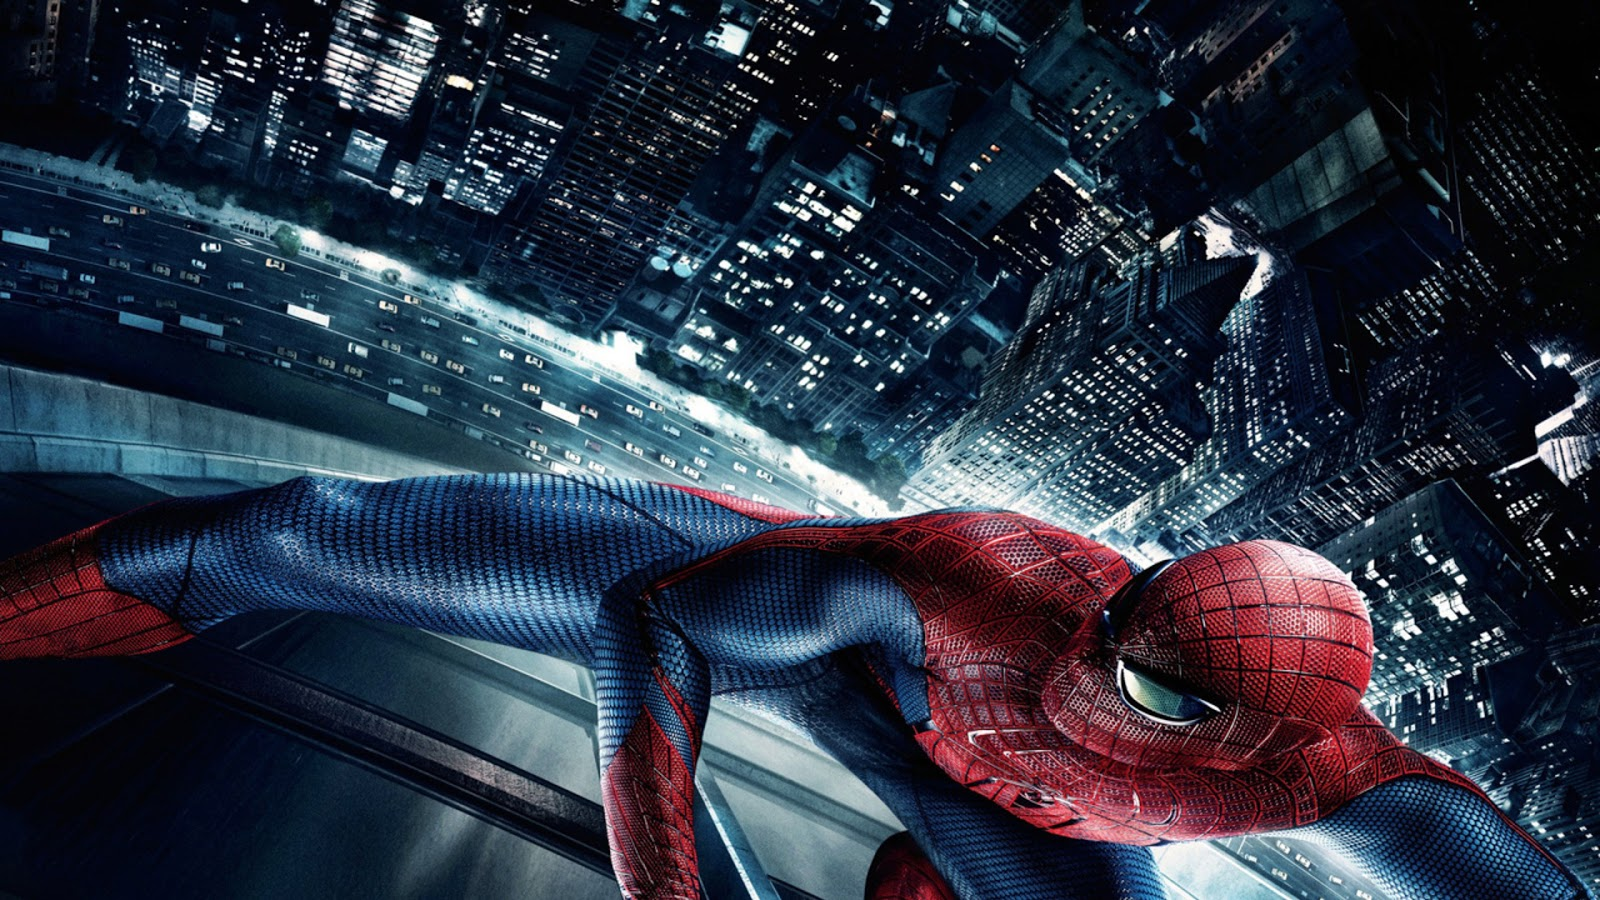 Spiderman on Building Wallpaper HD